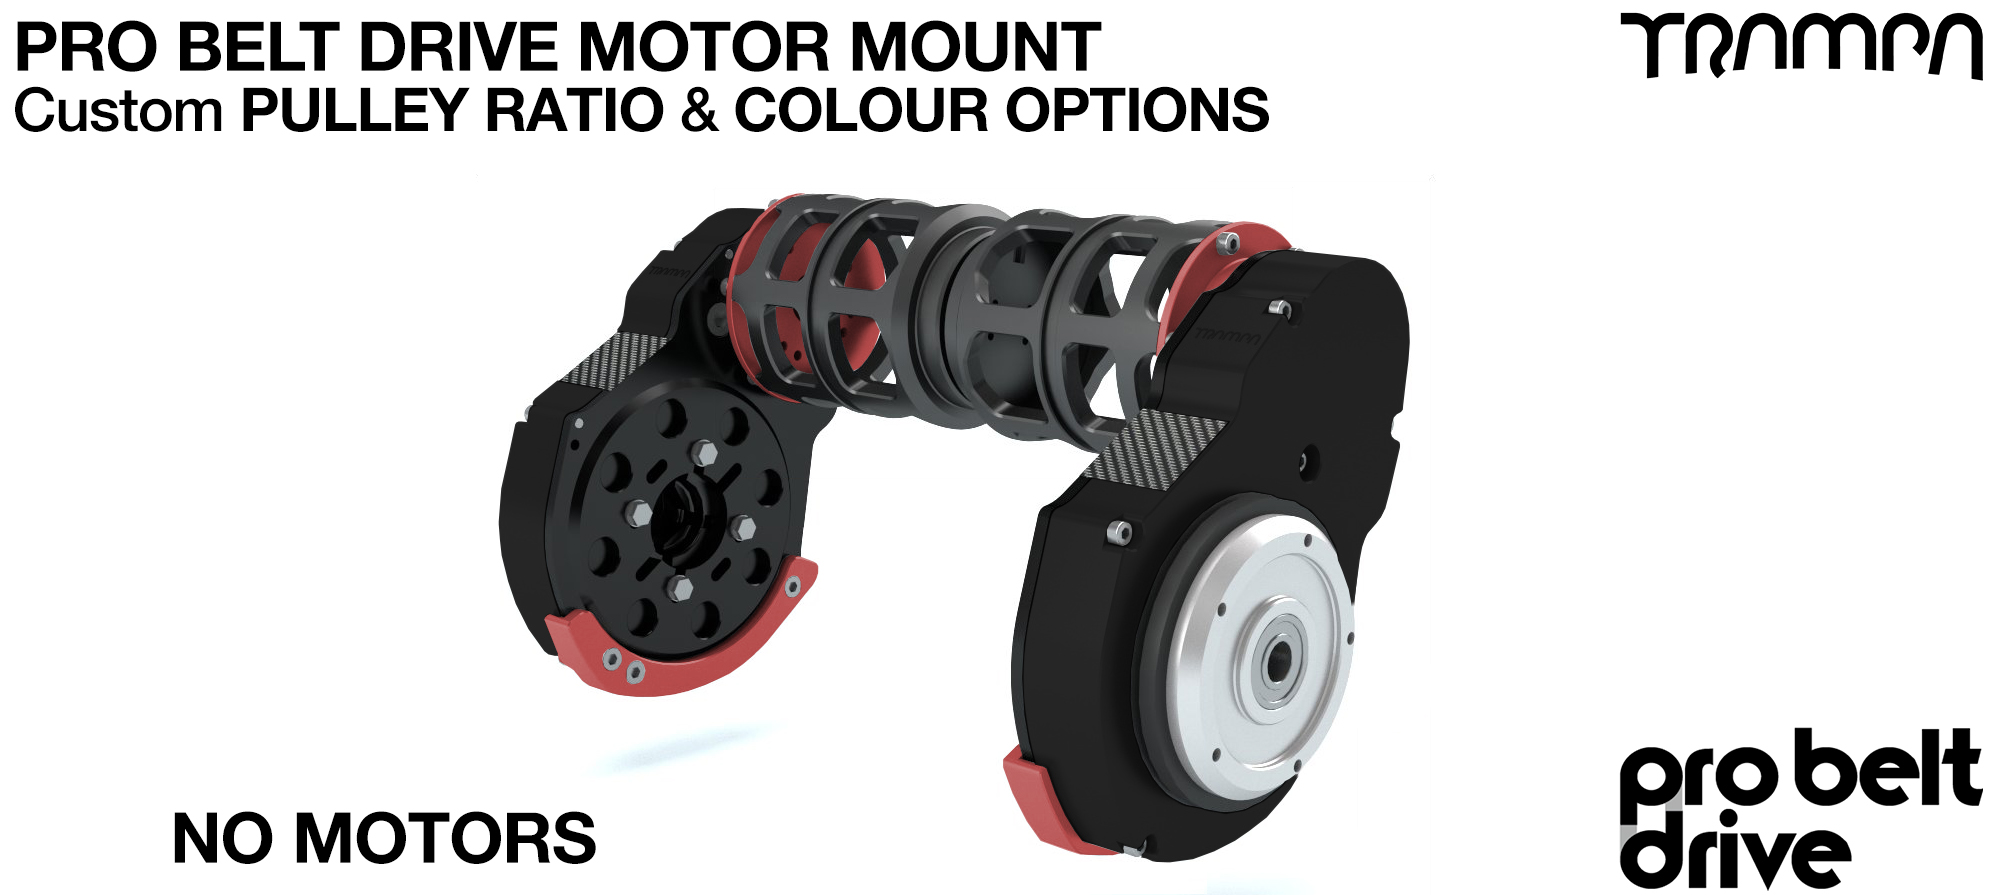 Mountainboard PRO Belt Drive TWIN Motor Mounts with Motor Protection housings